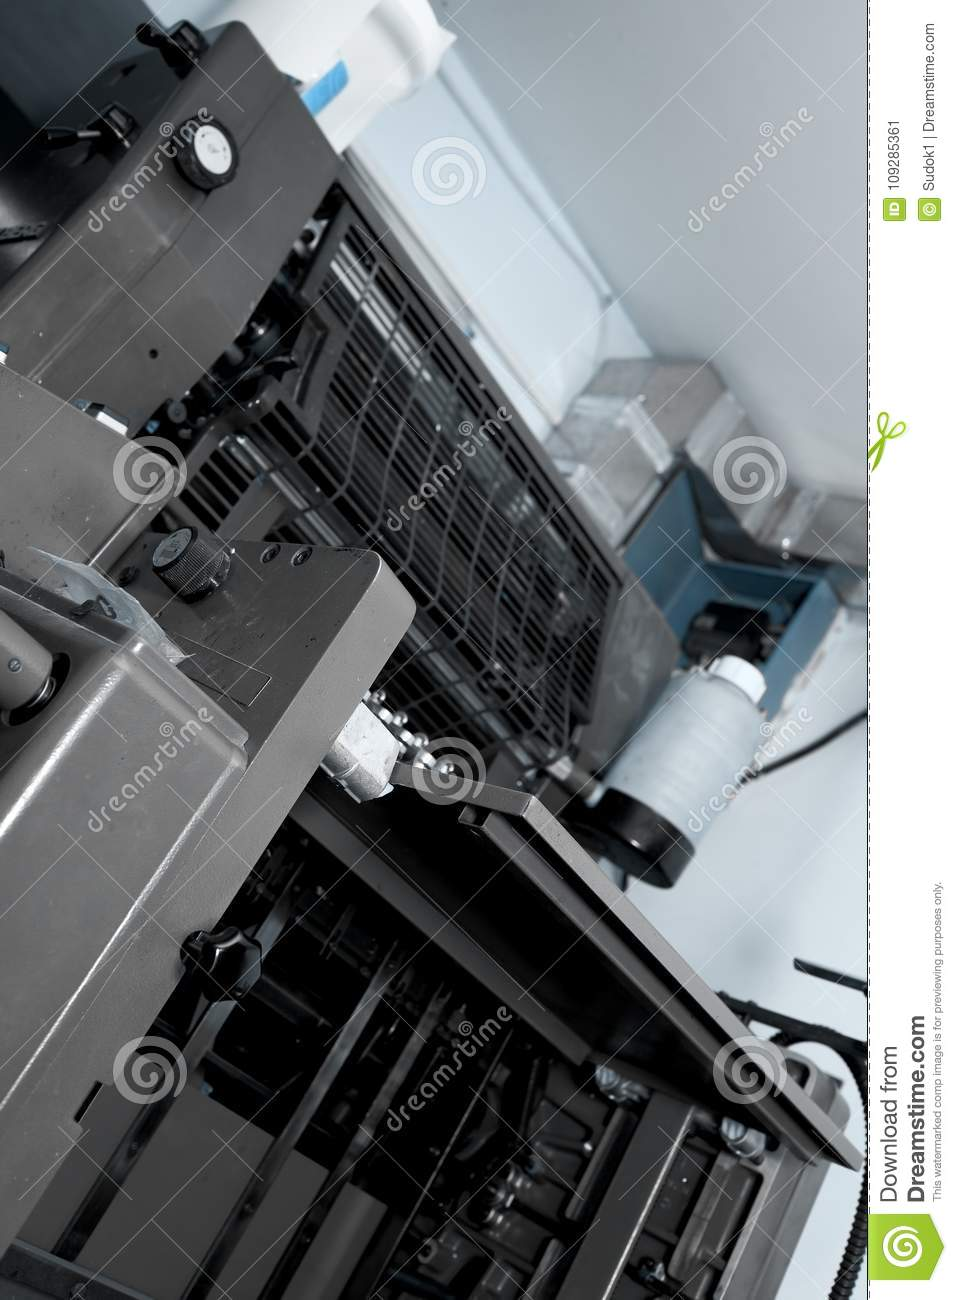 Working Industrial Machine In The Basement Of Building Stock Image Image Of Shop Machinery 109285361